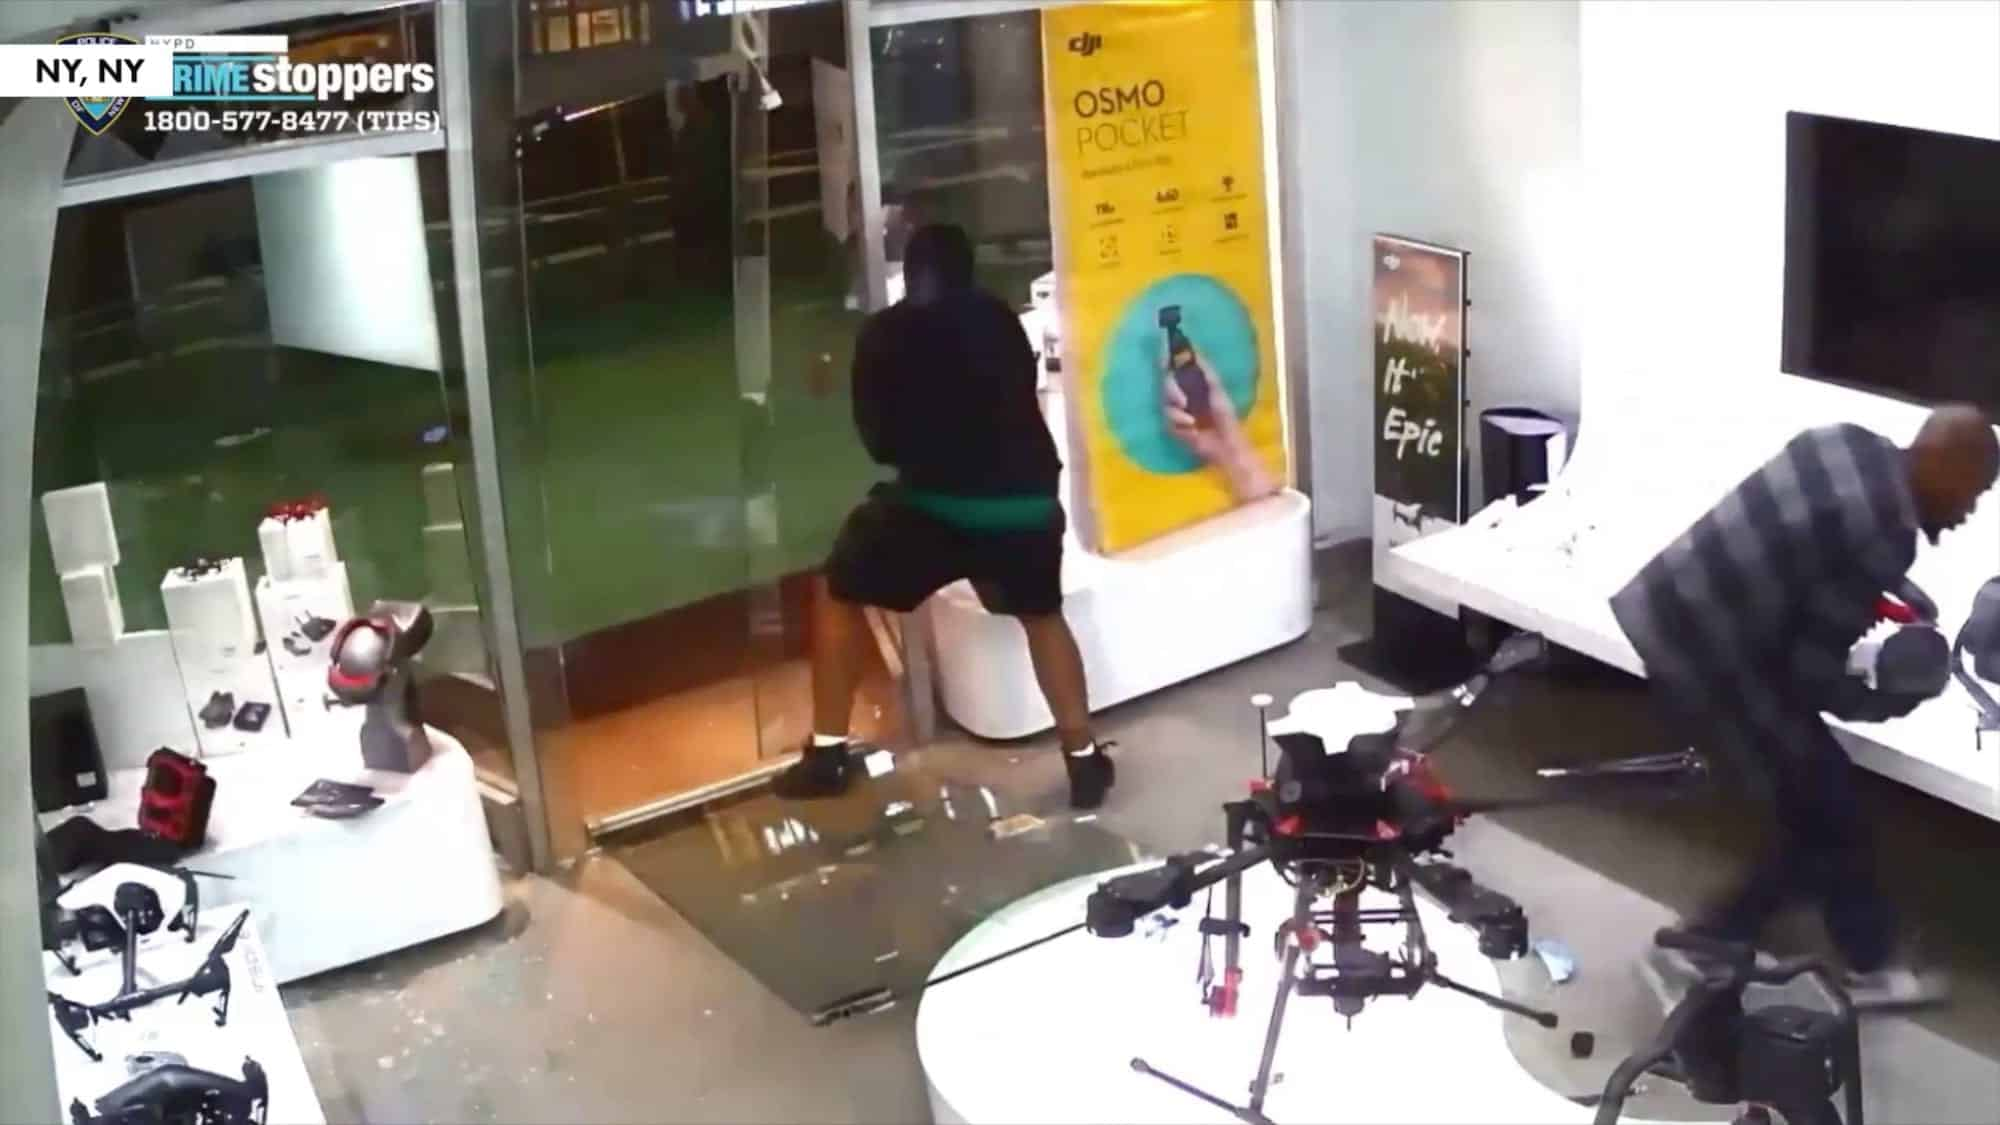 $16,000 worth of DJI drones stolen from DJI Store in NYC